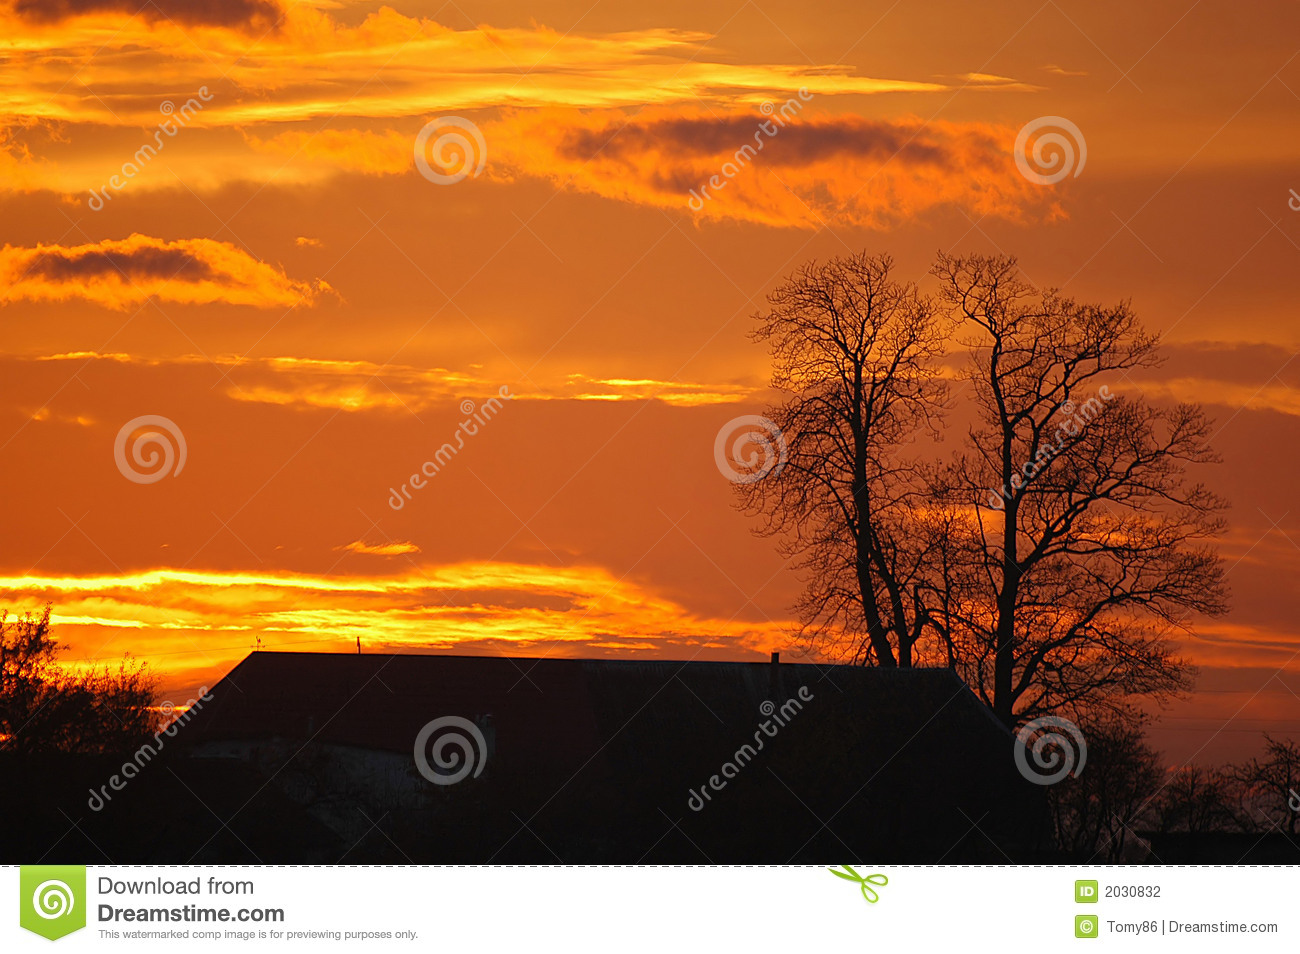 Sunset with tree background